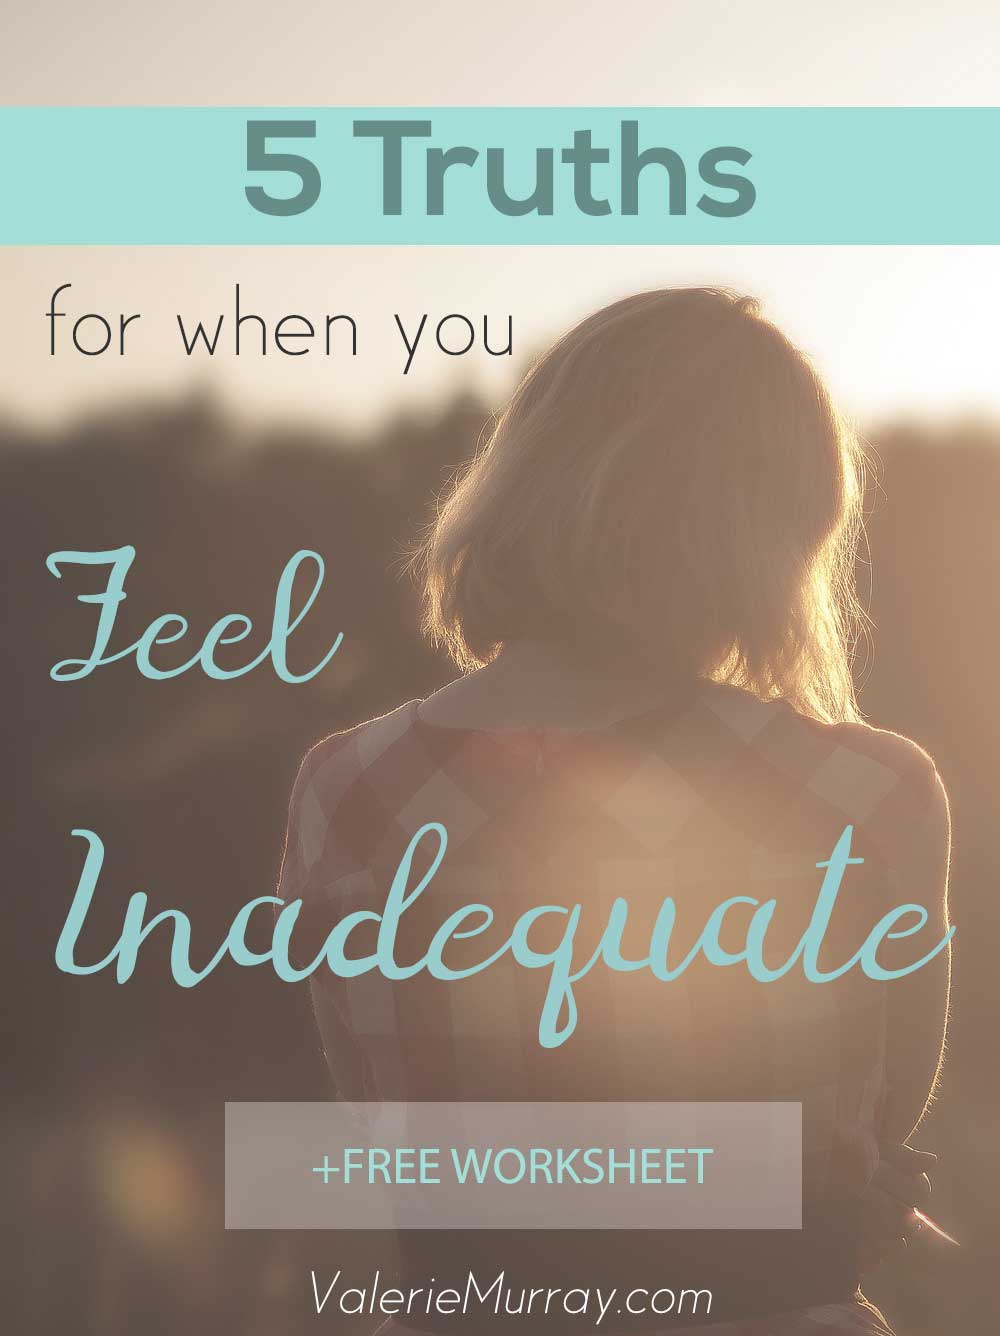 Do you feel inadequate to serve the Lord when He's tugging on your heart? Here are 5 important truths to remember when you second guess God's call.